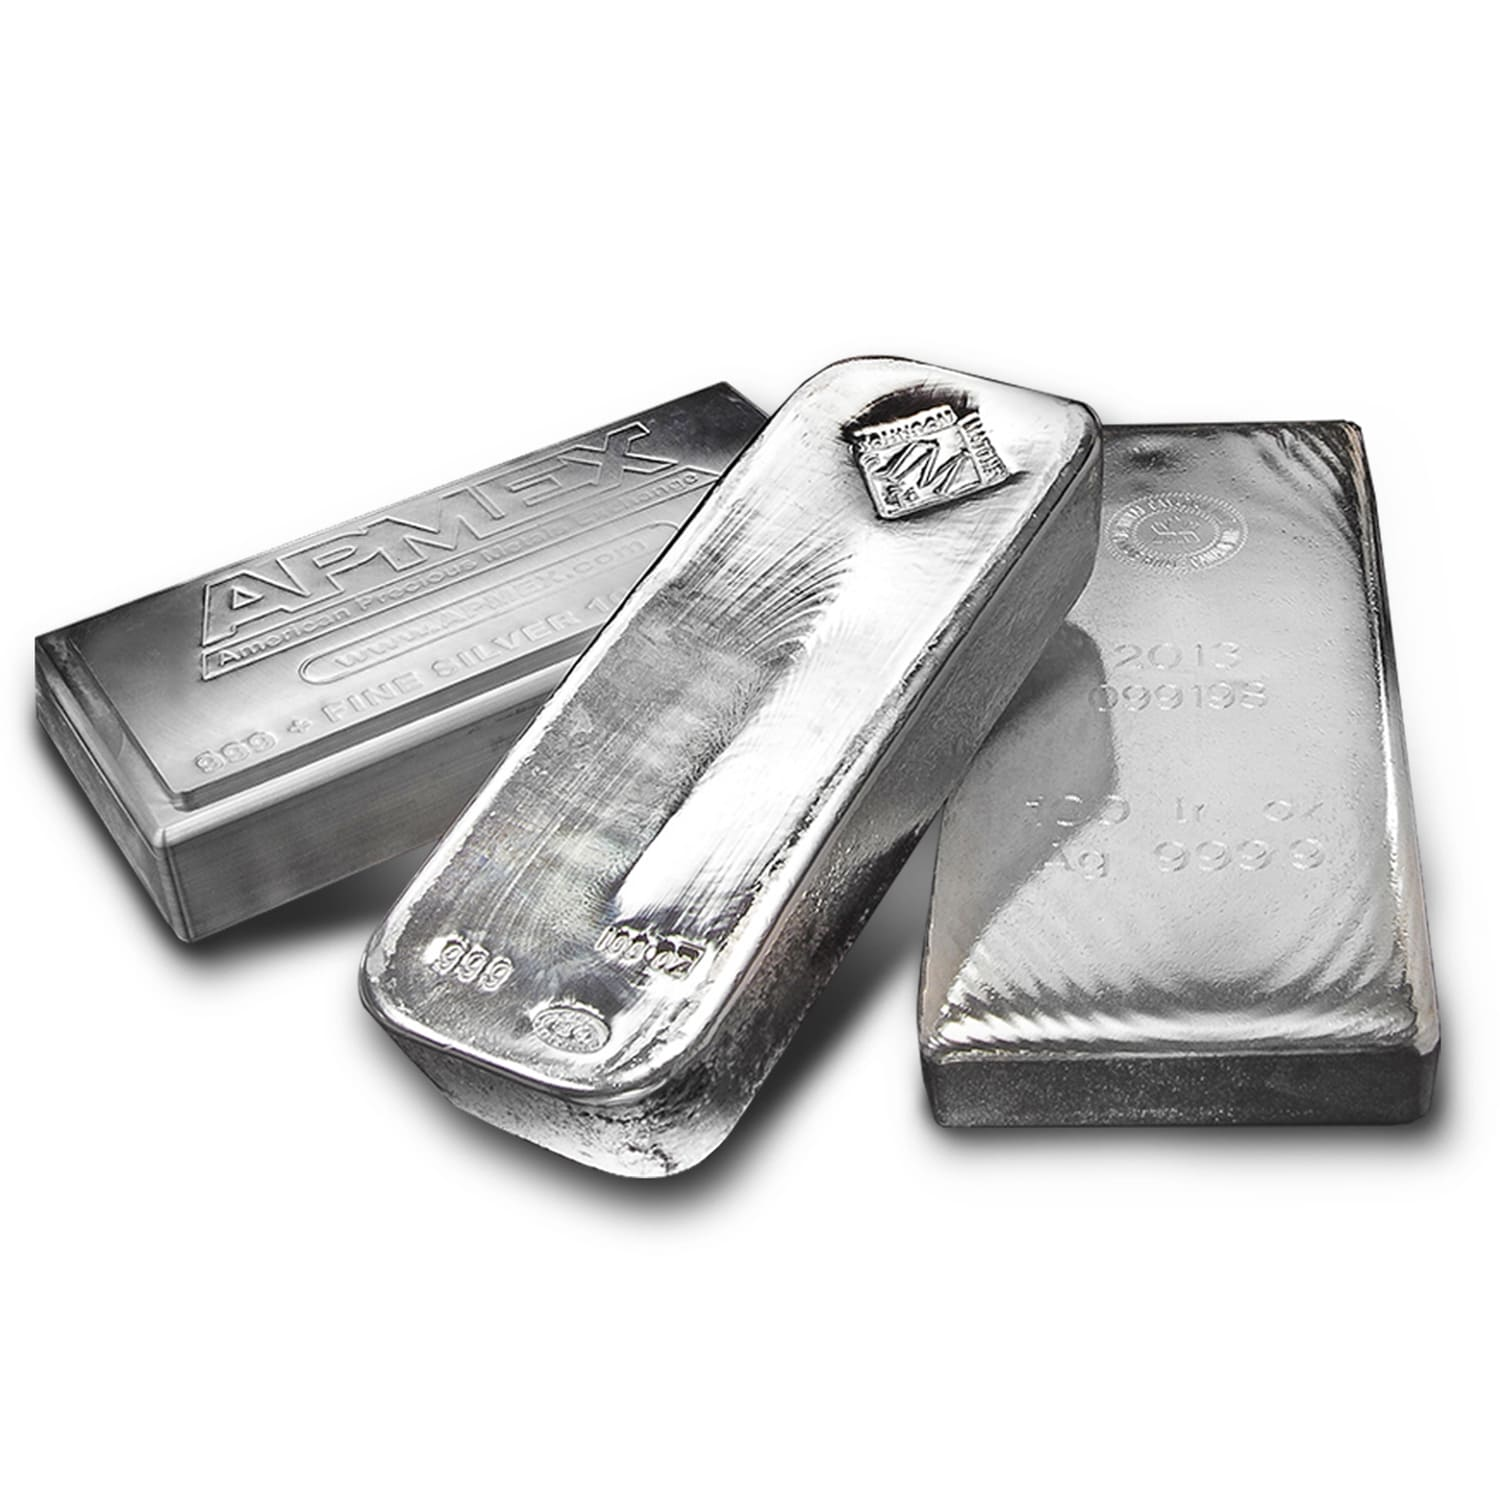 103.90 oz Silver Bar - Secondary Market